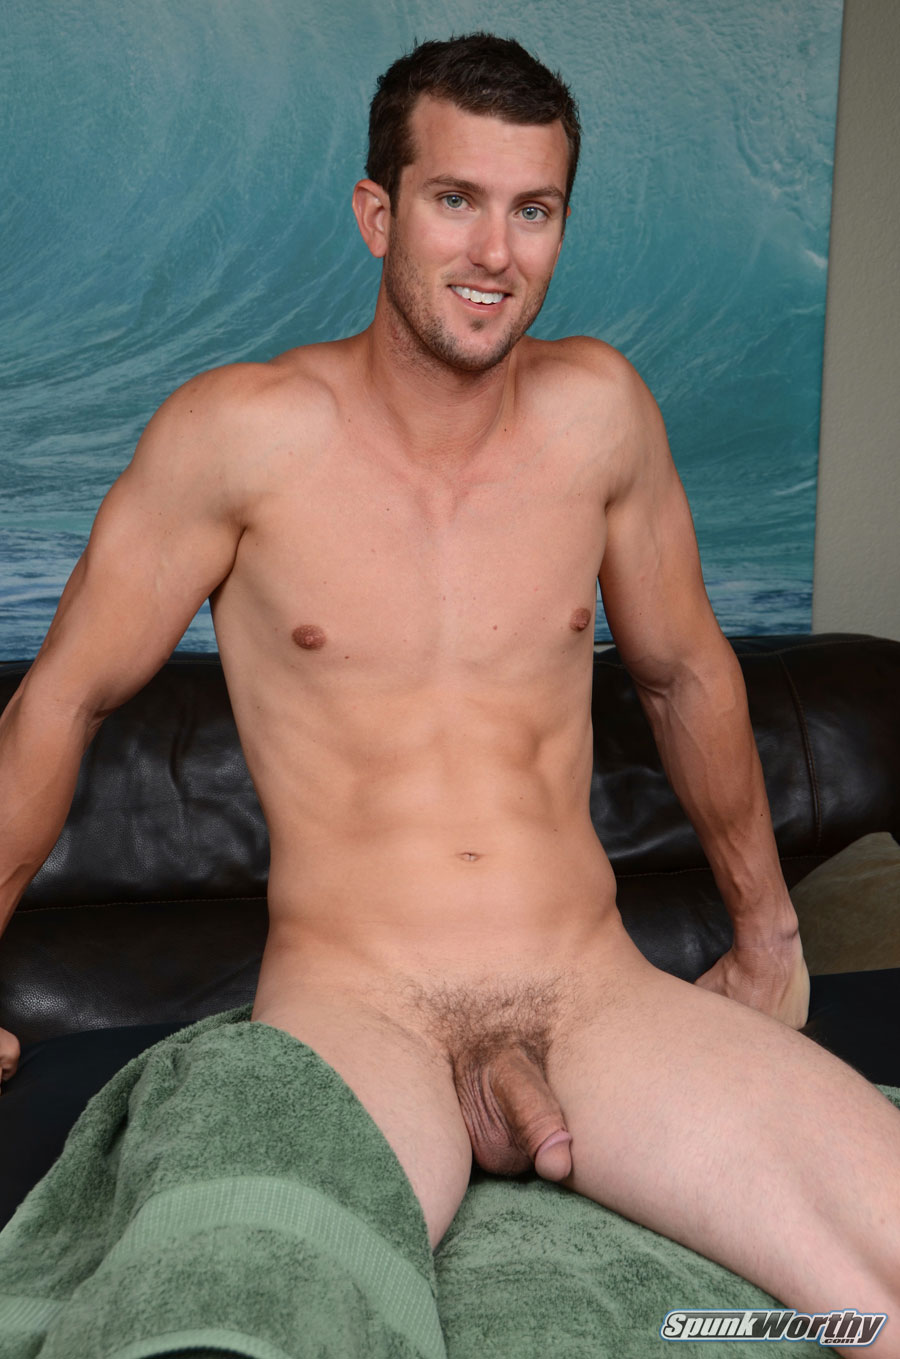 SpunkWorthy-Tommy-Straight-Guys-First-Blow-Job-From-A-Gay-Guy-Massage-Amateur-Gay-Porn-03 Amateur Straight Guy Gets His First Massage With A Happy Ending